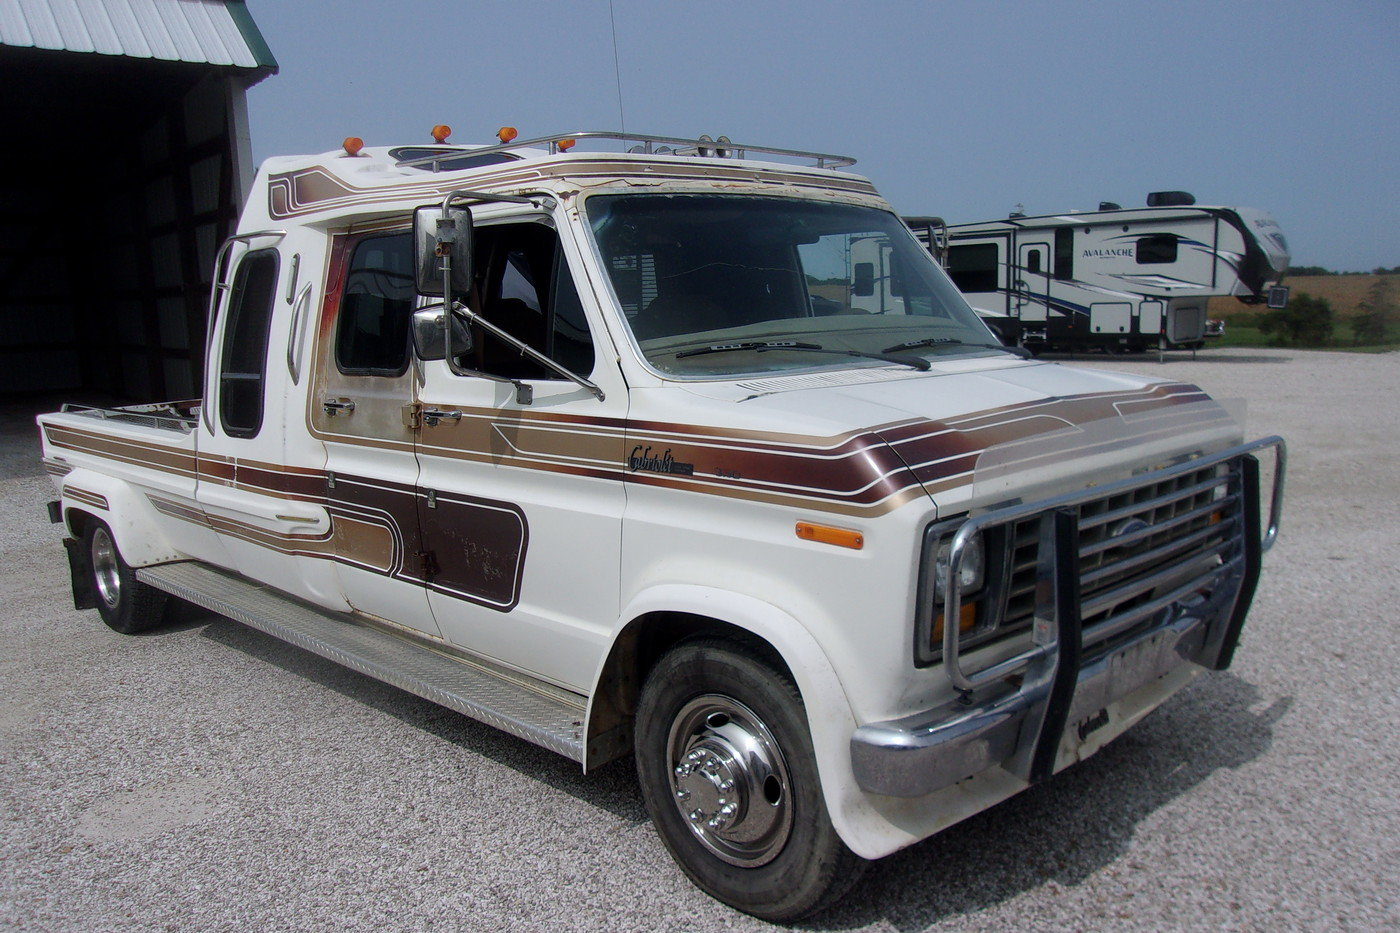 1987 Ford E350 Cabriolet Dually Van/Pickup For Sale (picture 1 of 6)